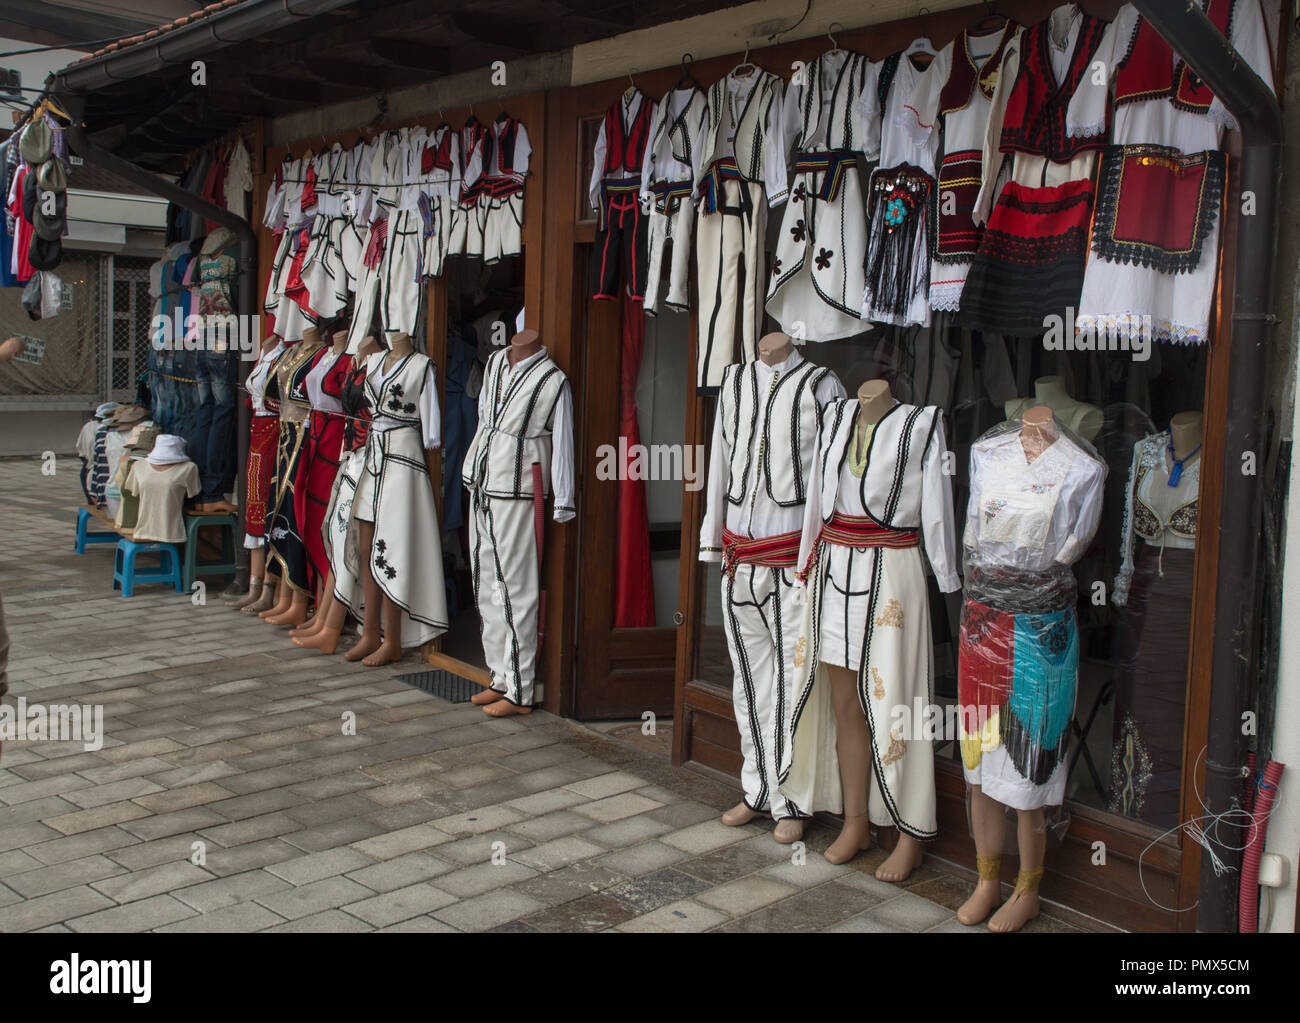 Albanien traitionell costumes - Stock Image